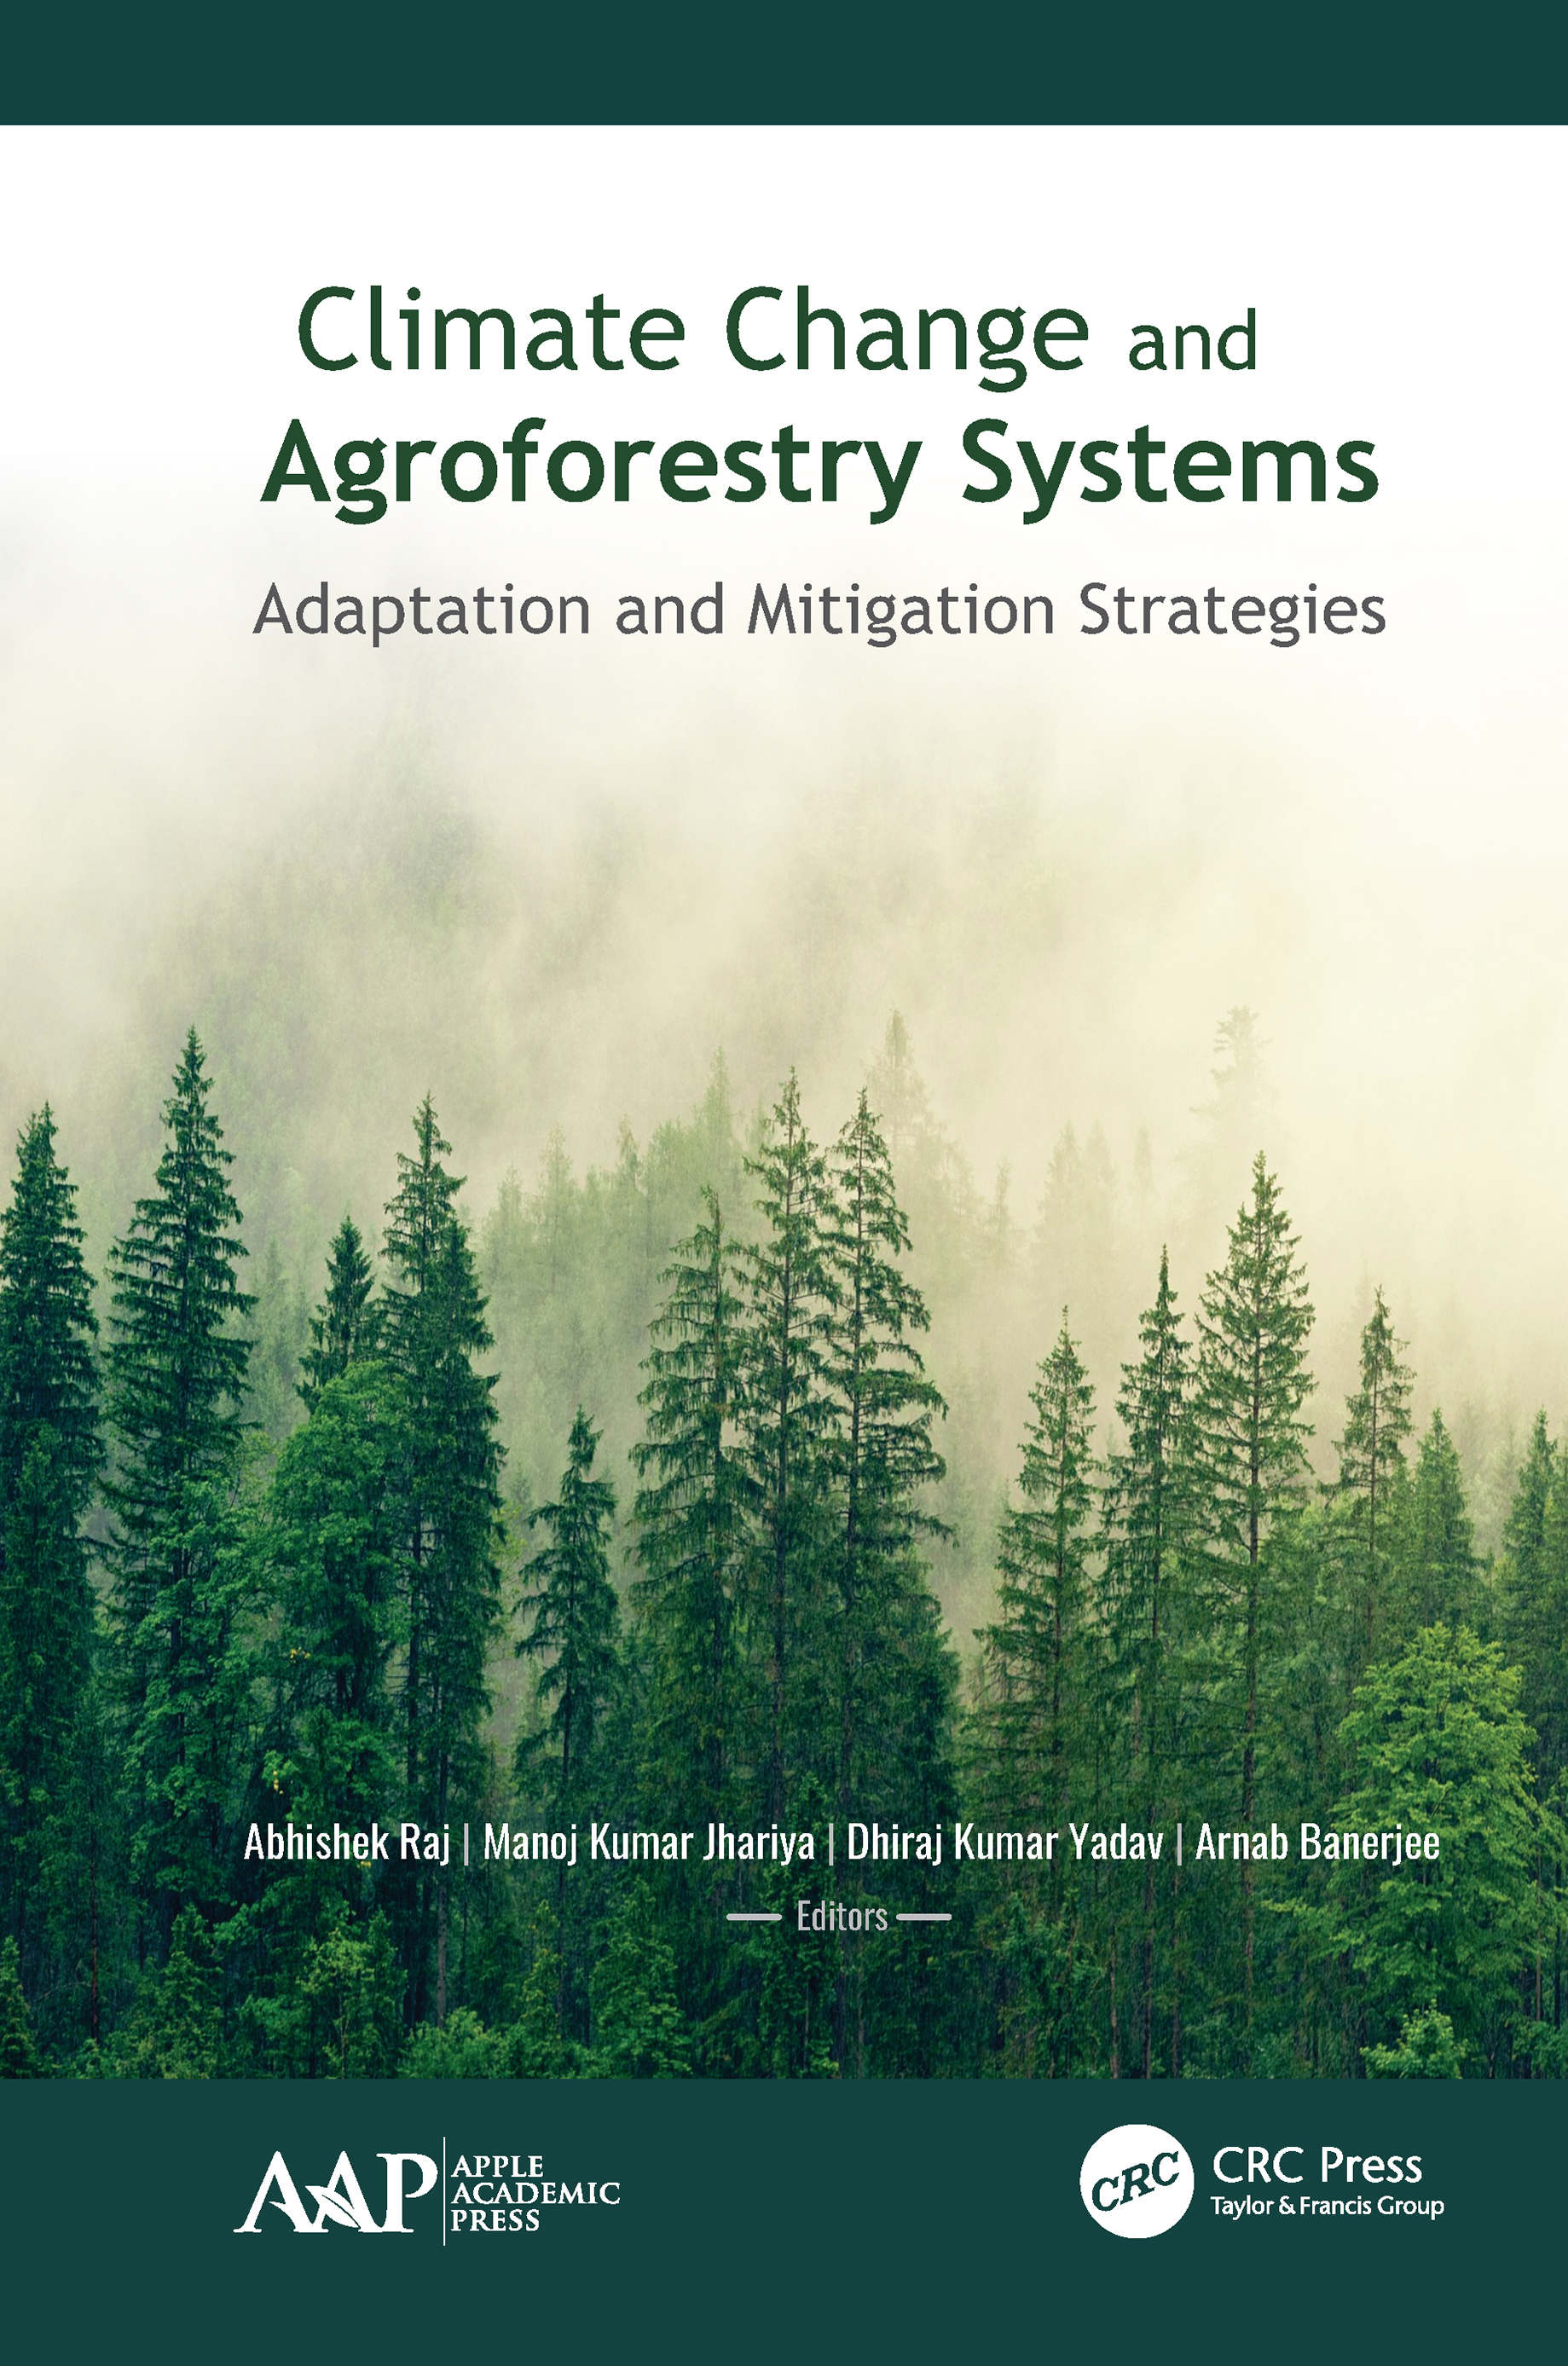 Climate Change and Agroforestry Systems: Adaptation and Mitigation Strategies book cover